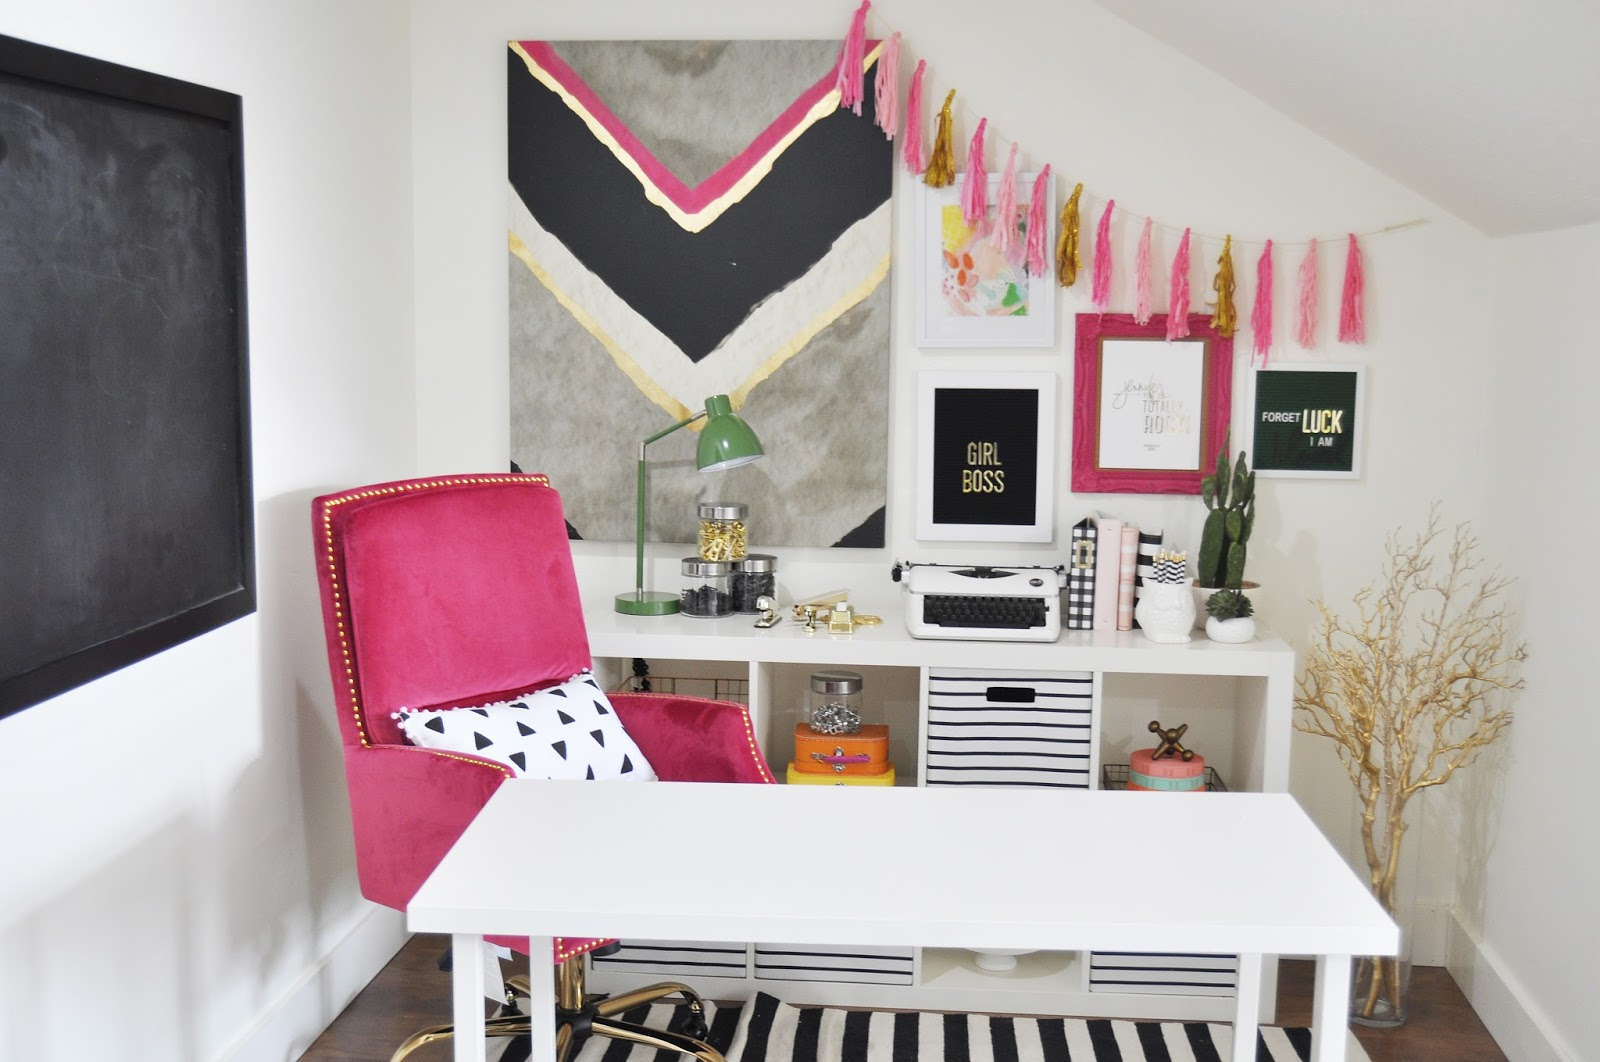 Jen Gallacher Craft Room Tour with video from www.jengallacher.com. #craftroom #craftroomtour #jengallacher